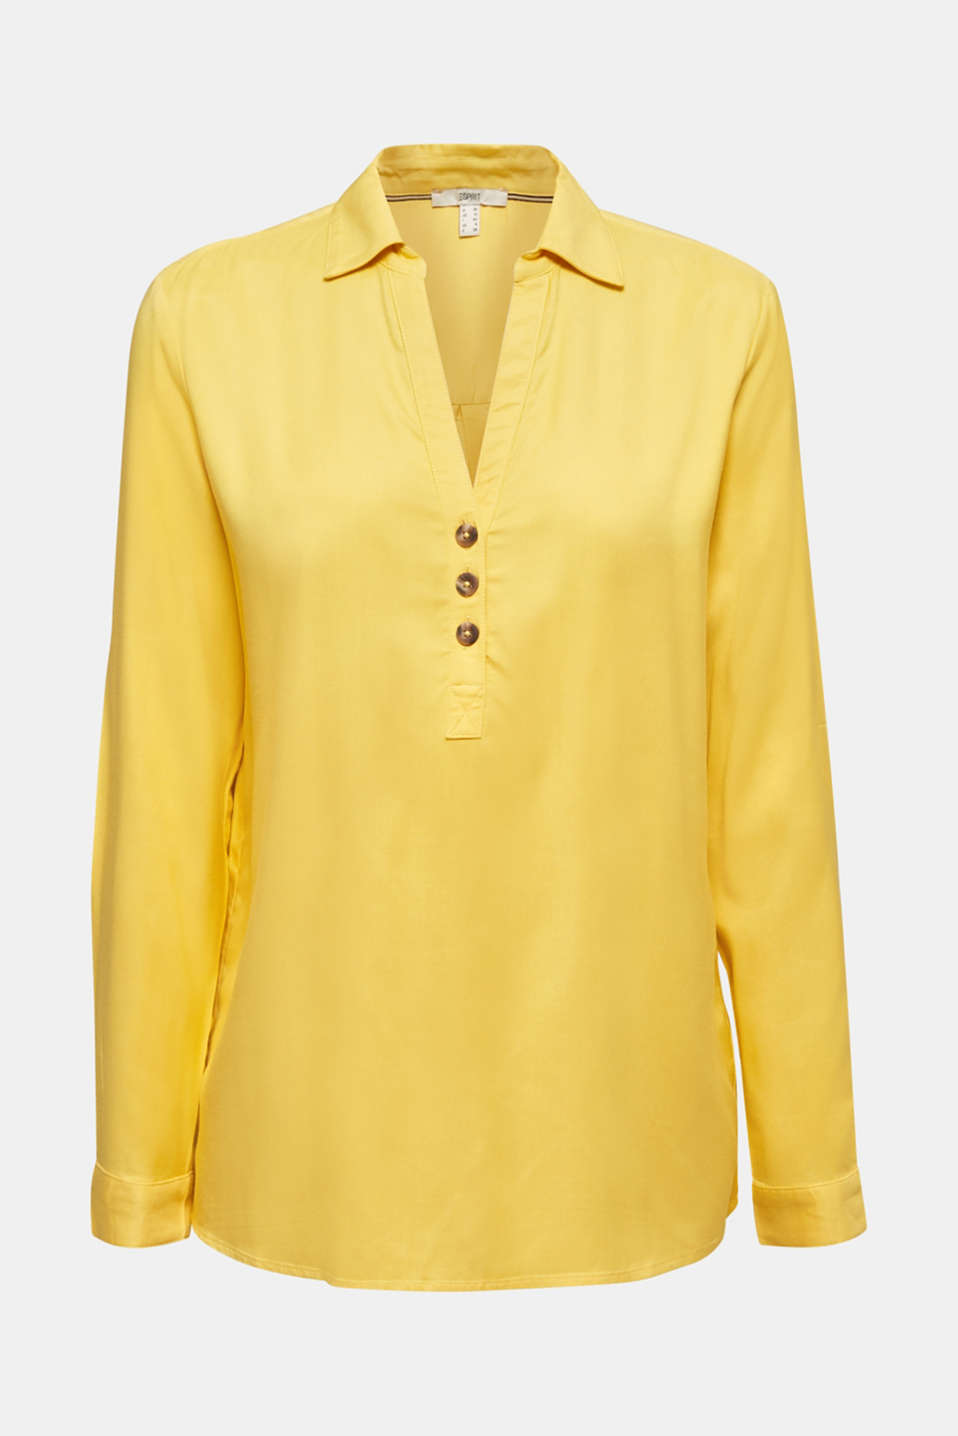 Slip-on blouse with an open collar, YELLOW, detail image number 6